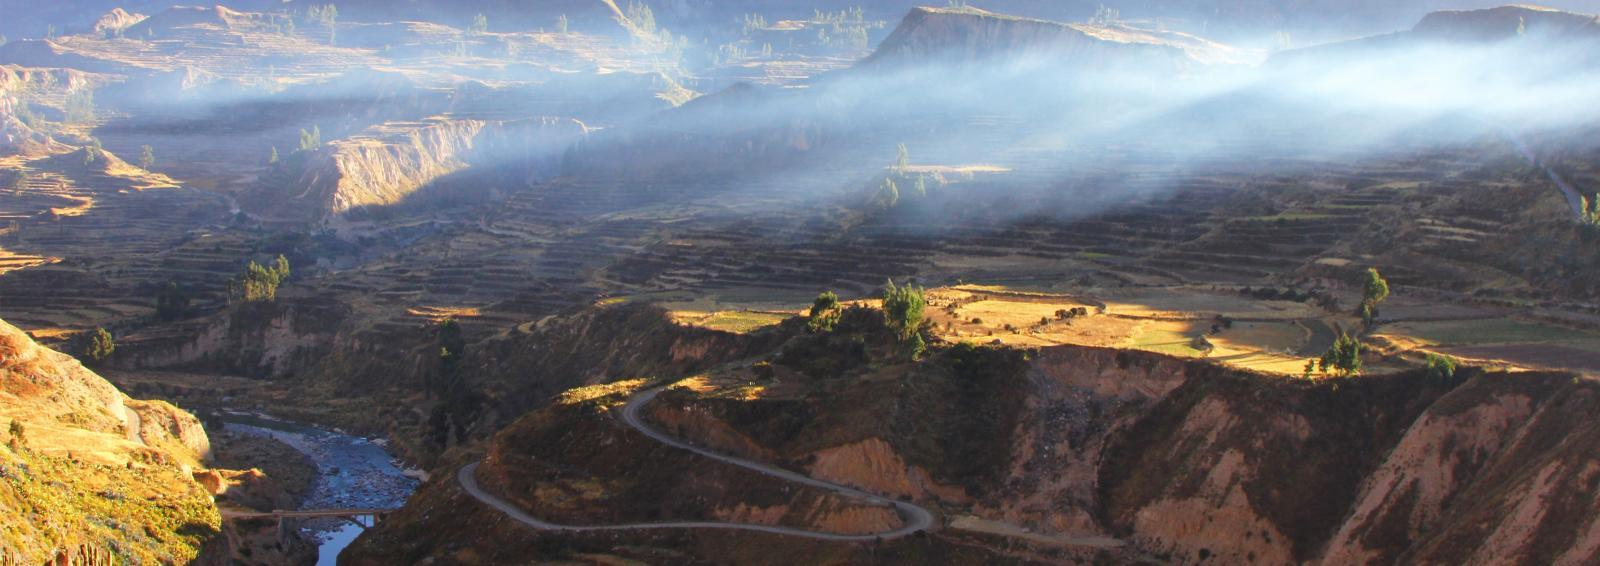 Colca Canyon Trips, Colca Canyon Tours, Colca Canyon Holidays